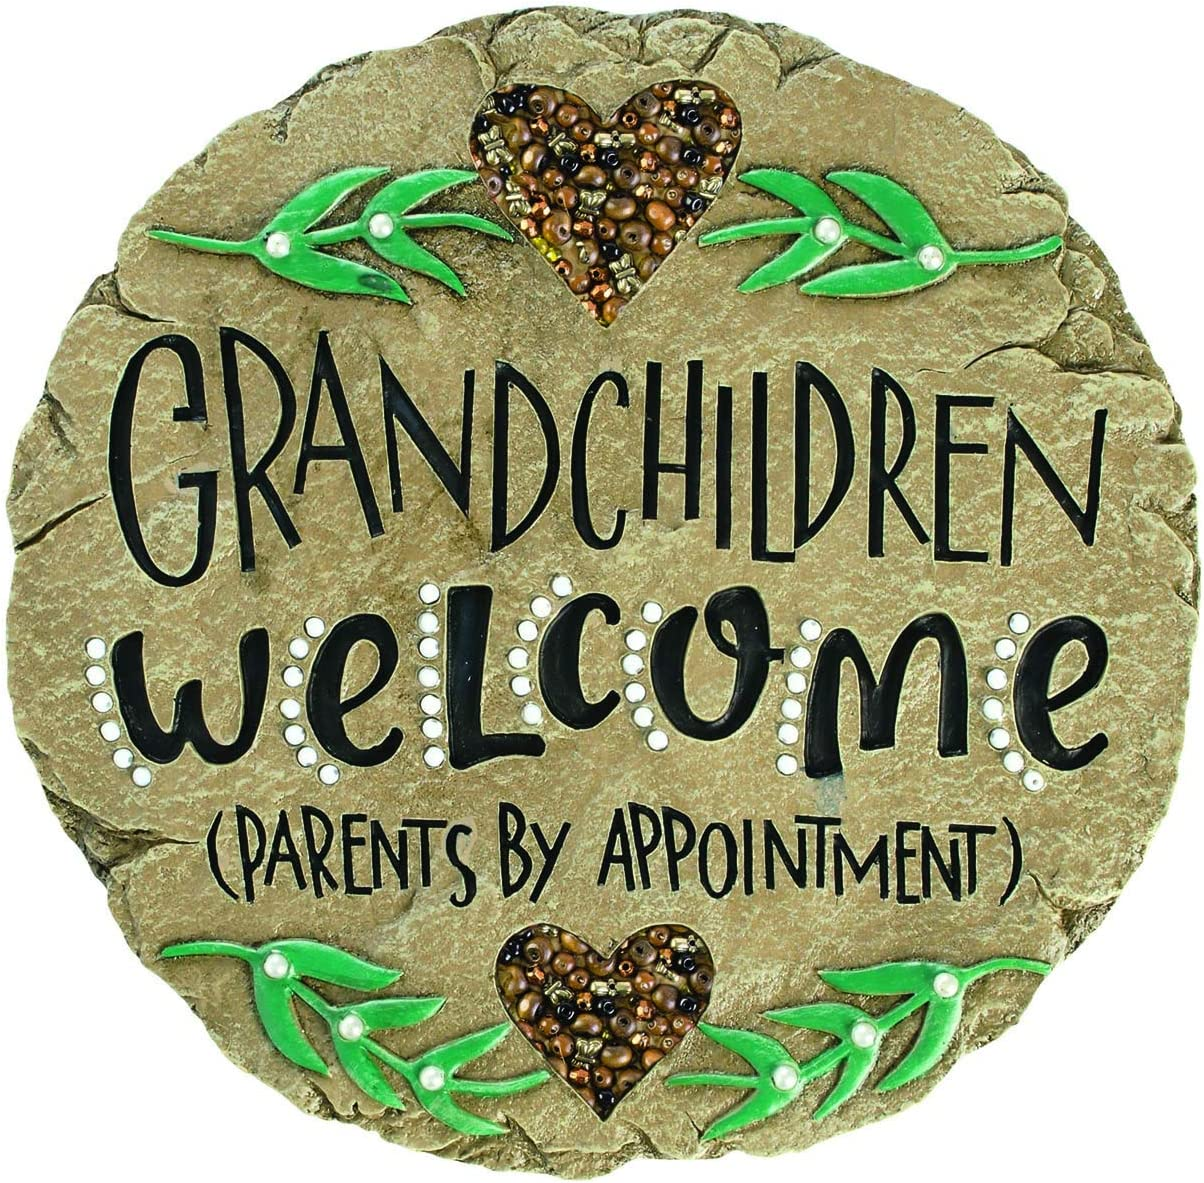 Carson Beadworks Grandchildren Welcome Garden Stone (Brown)